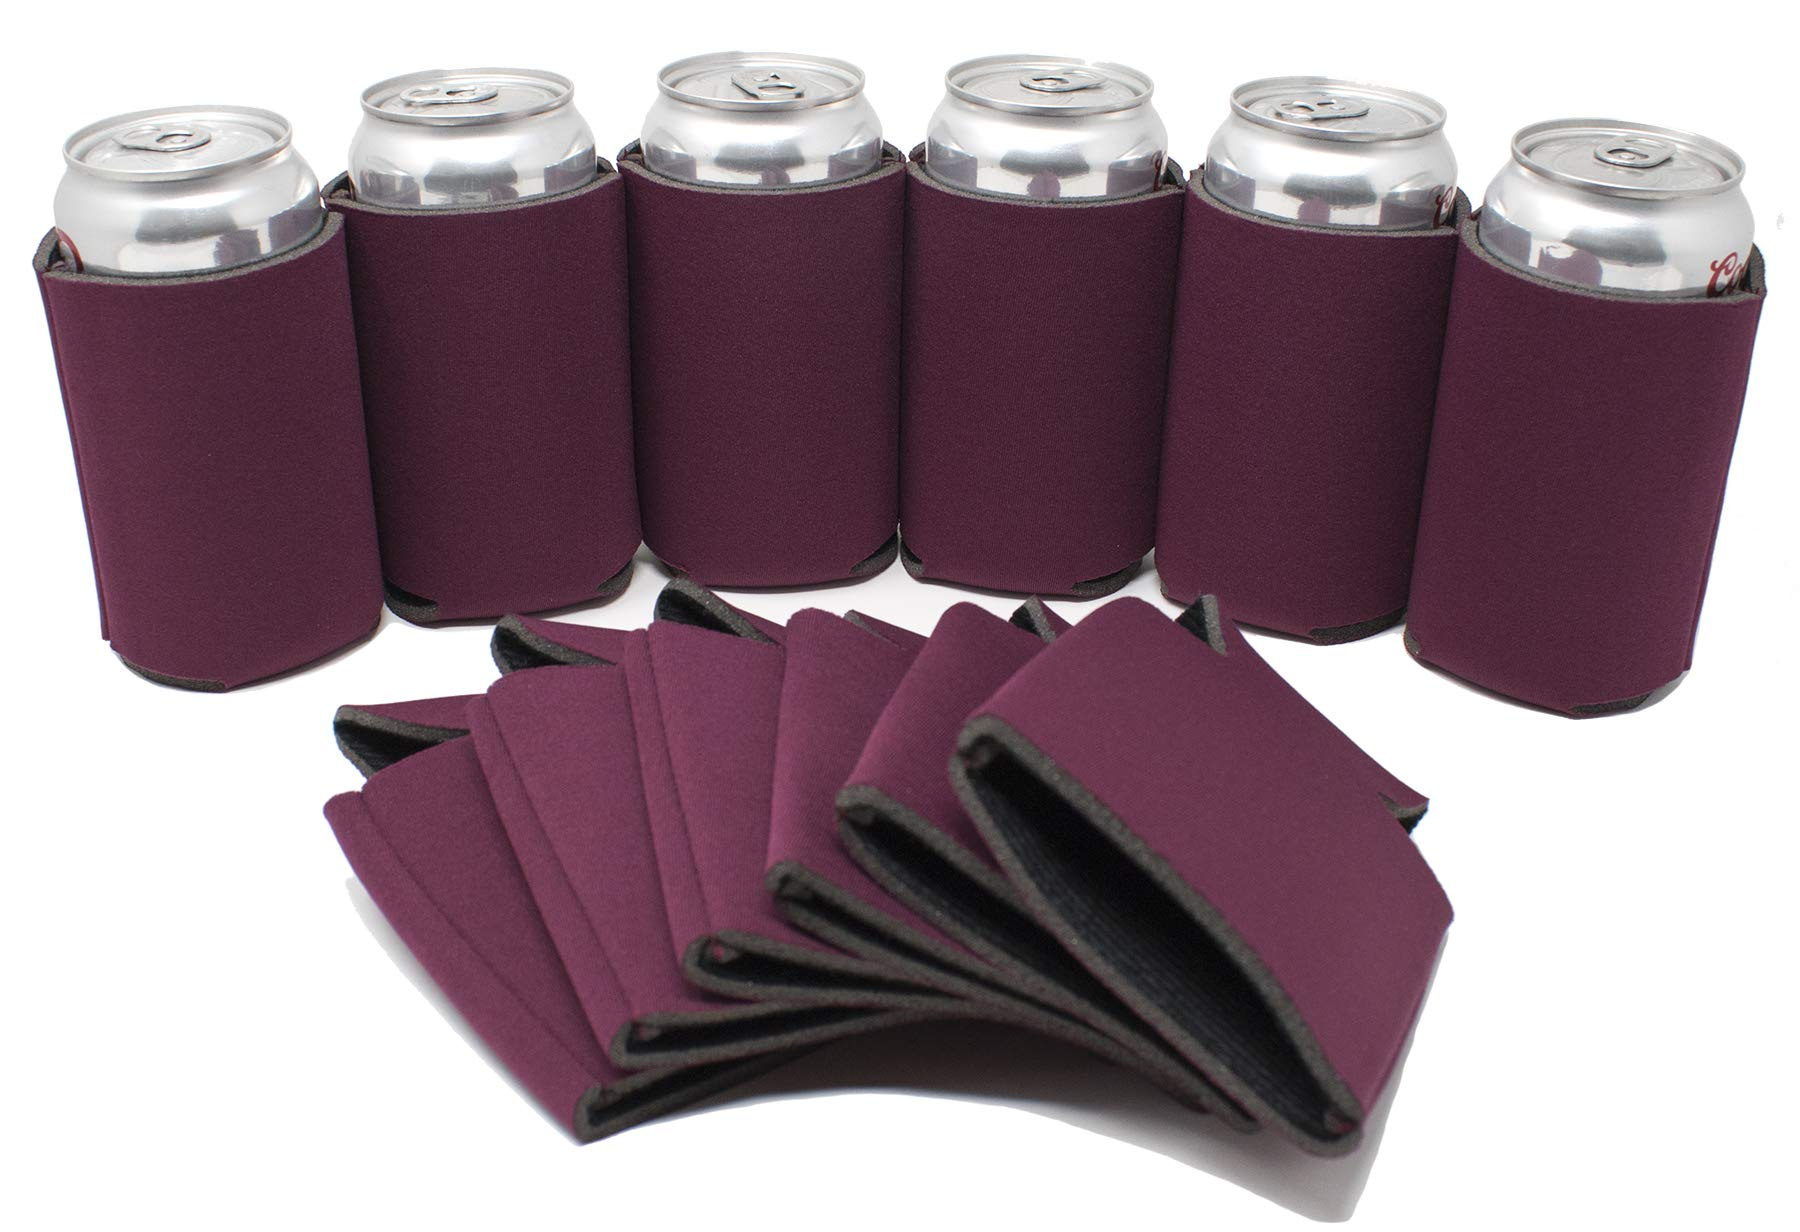 TahoeBay 12 Blank Beer Can Coolers, Plain Bulk Collapsible Soda Cover Coolies, DIY Personalized Sublimation Sleeves for Weddings, Bachelorette Parties, Funny HTV Party Favors (Maroon, 12)